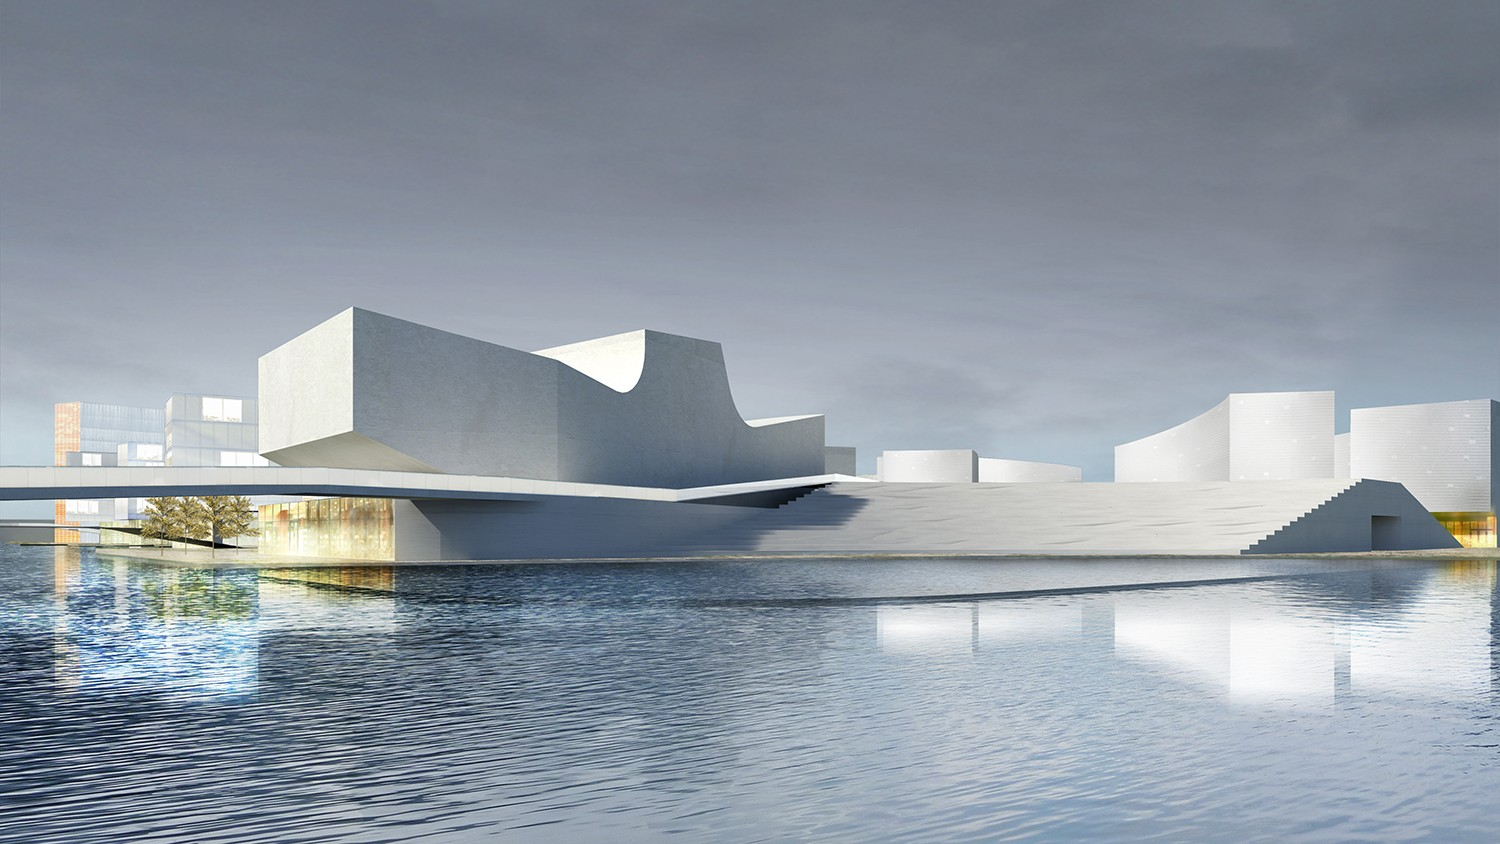 https://s3.us-east-2.amazonaws.com/steven-holl/uploads/projects/project-images/StevenHollArchitects_Shanghai_Camera03Amphitheater_WH.jpg